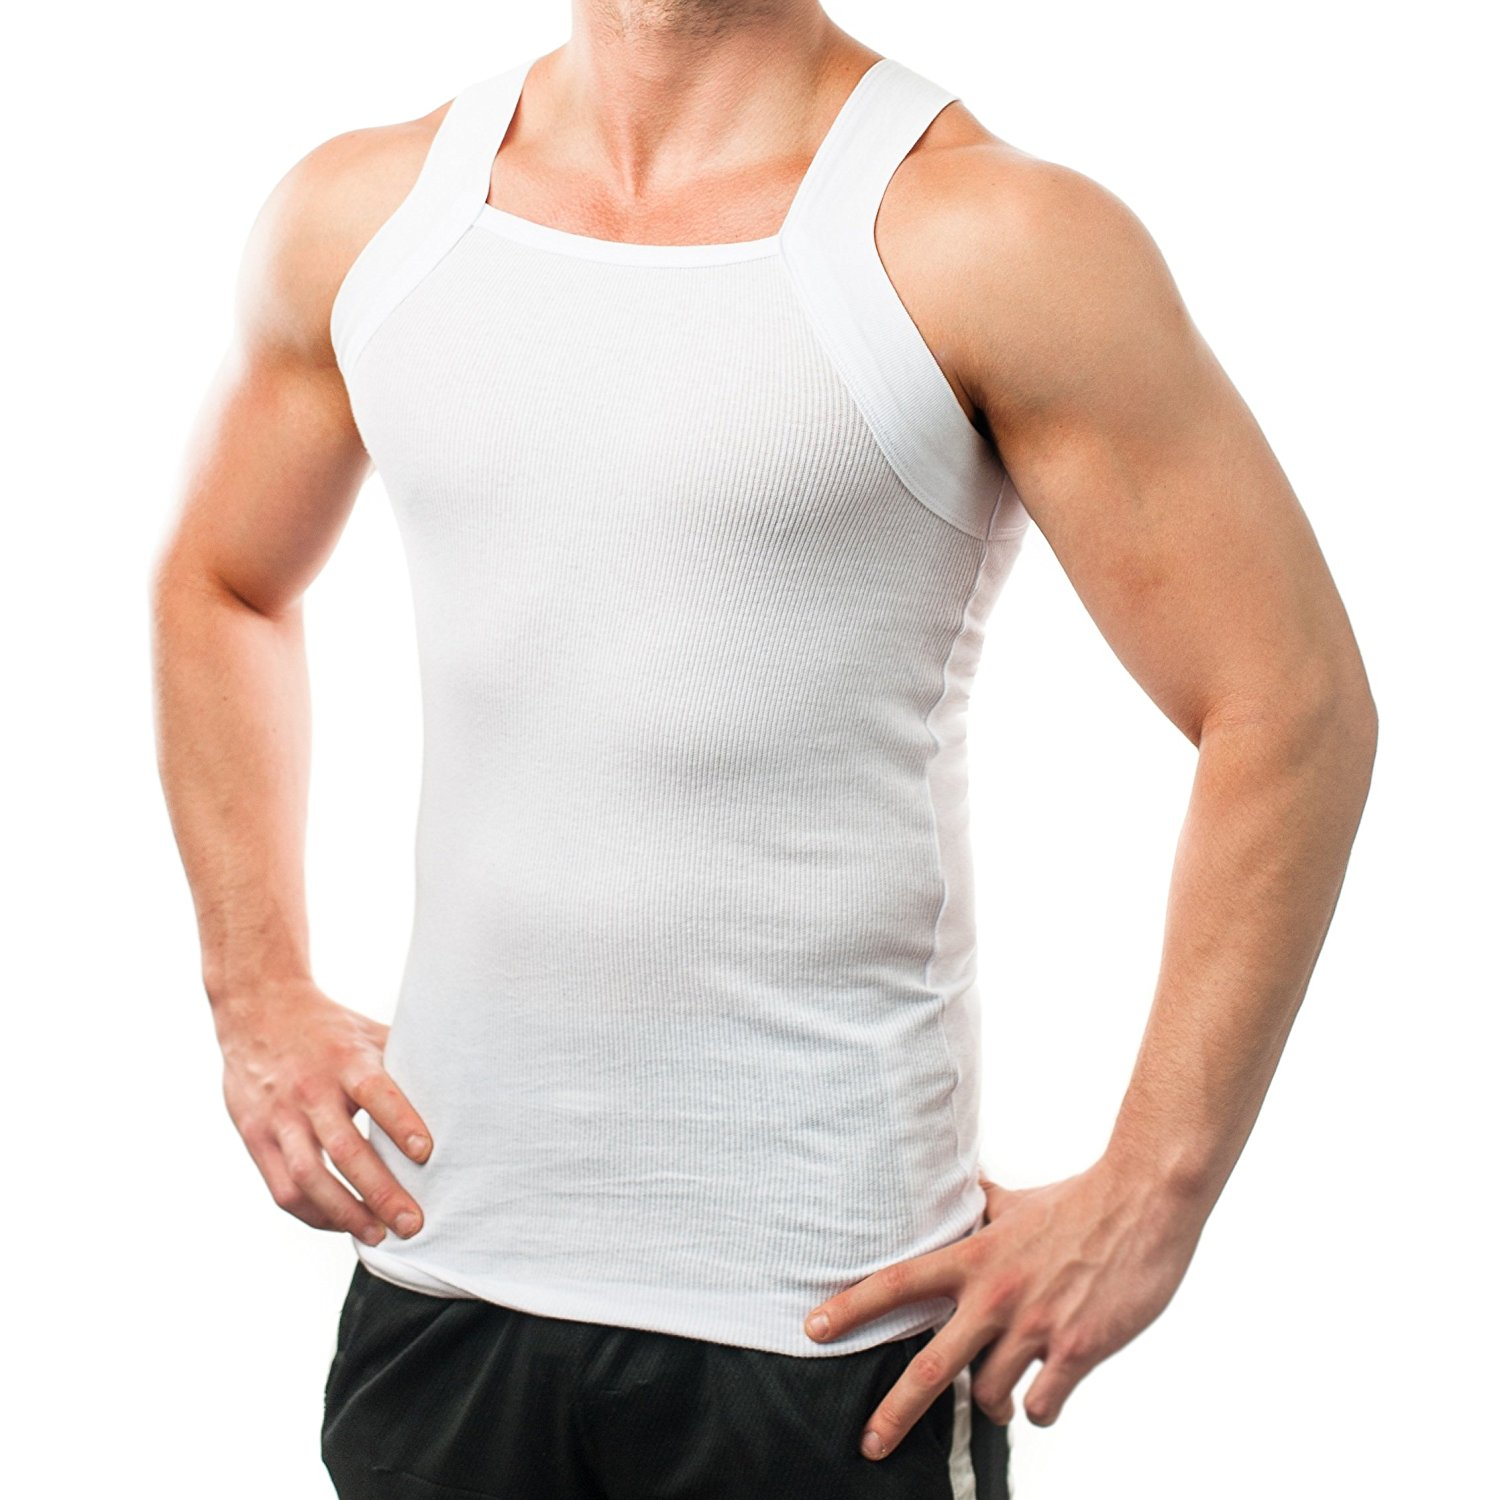 60d64aba086dd Different Touch Men s G-unit Style Tank Tops Square Cut Muscle Rib A-Shirts